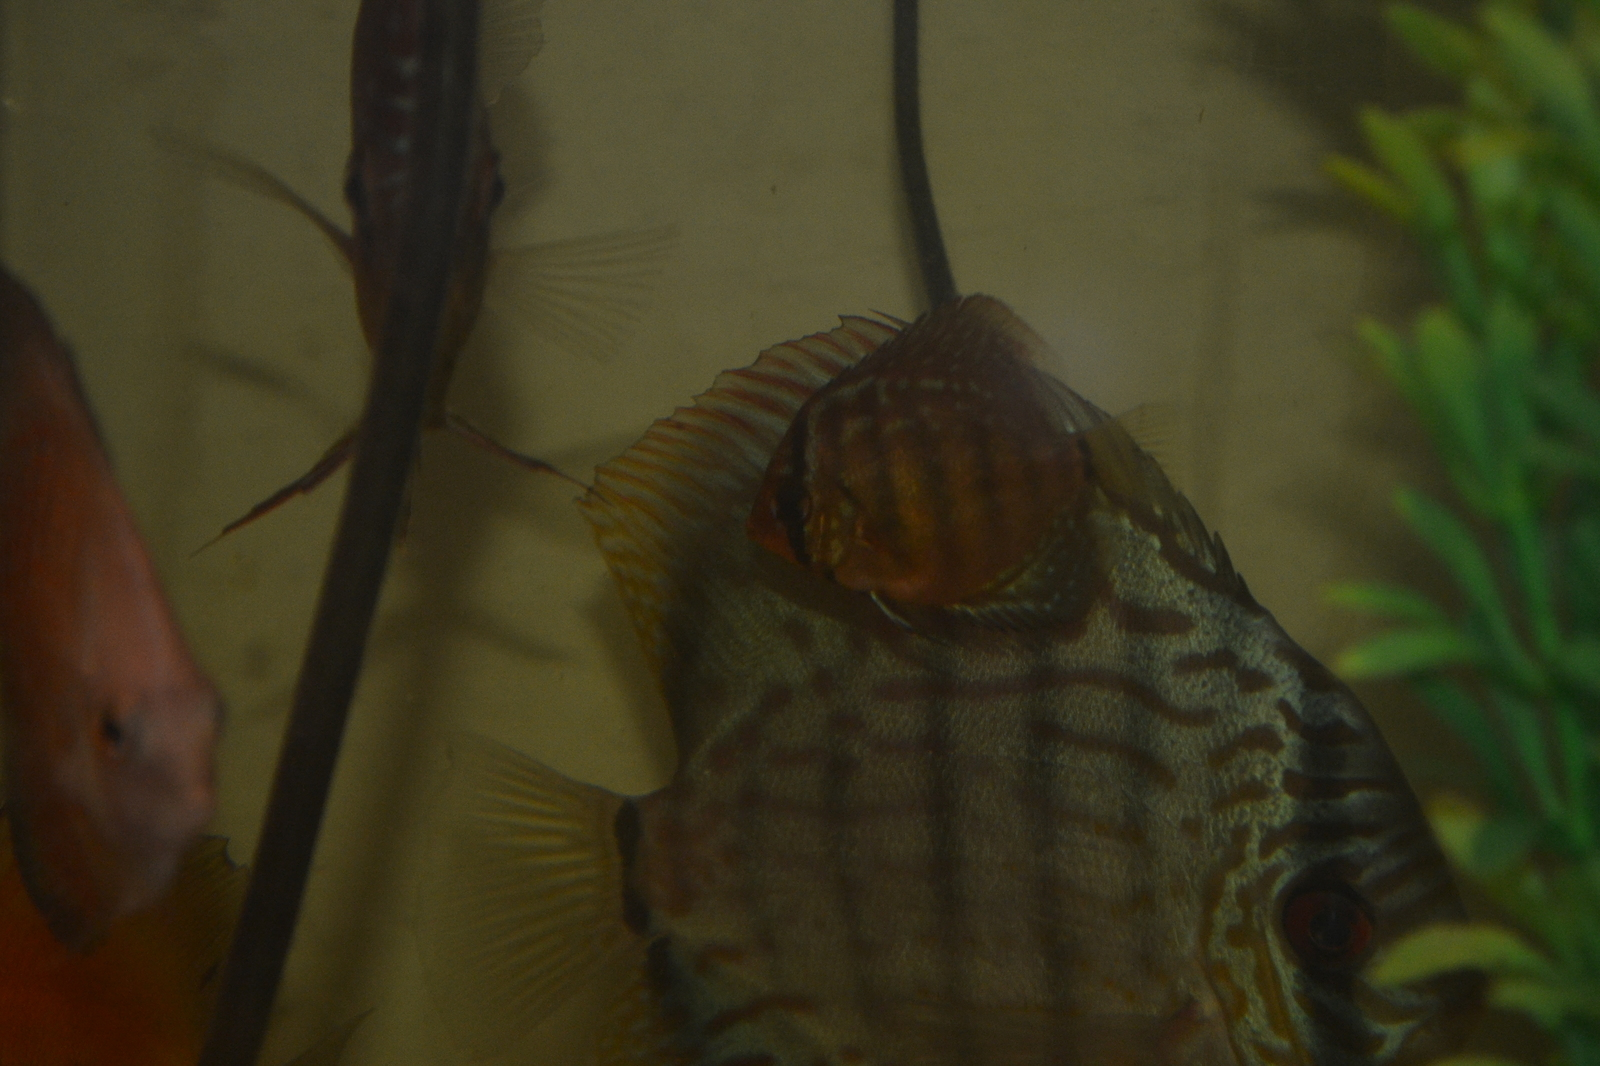 Tefe Green x Red Discus | by Cameron Gillman